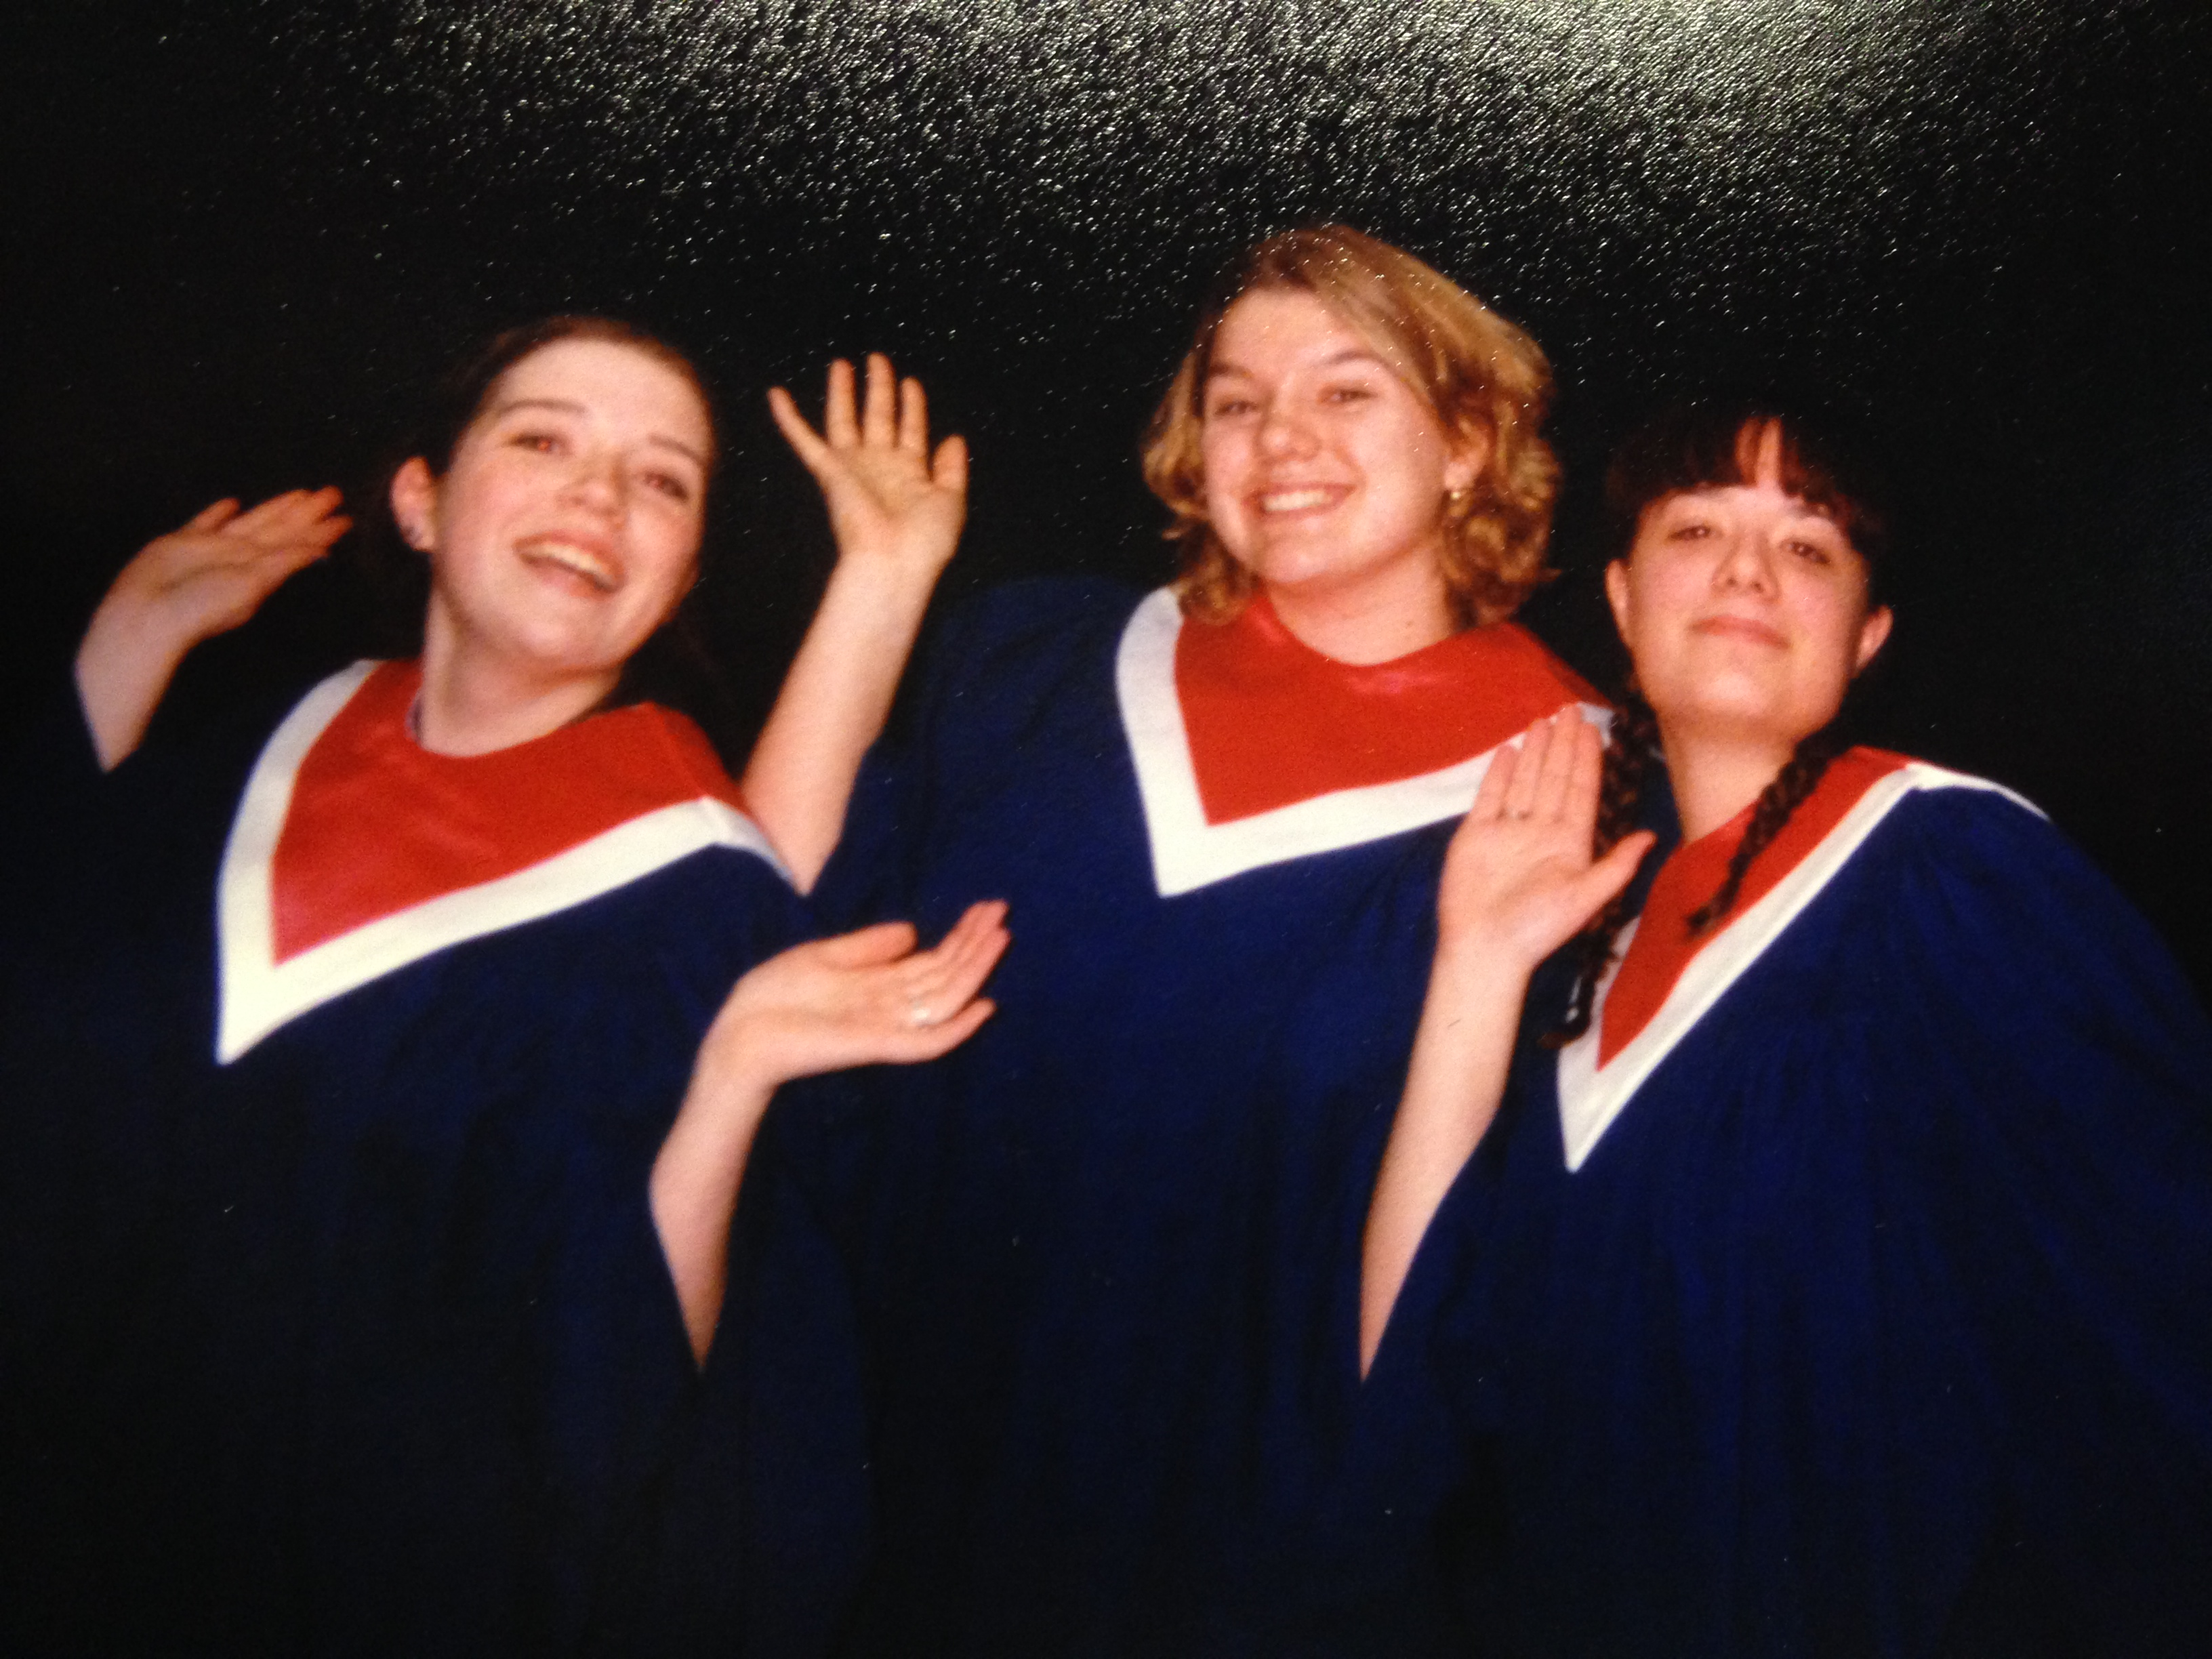 The North High School 1997 All-State Honor Choir members